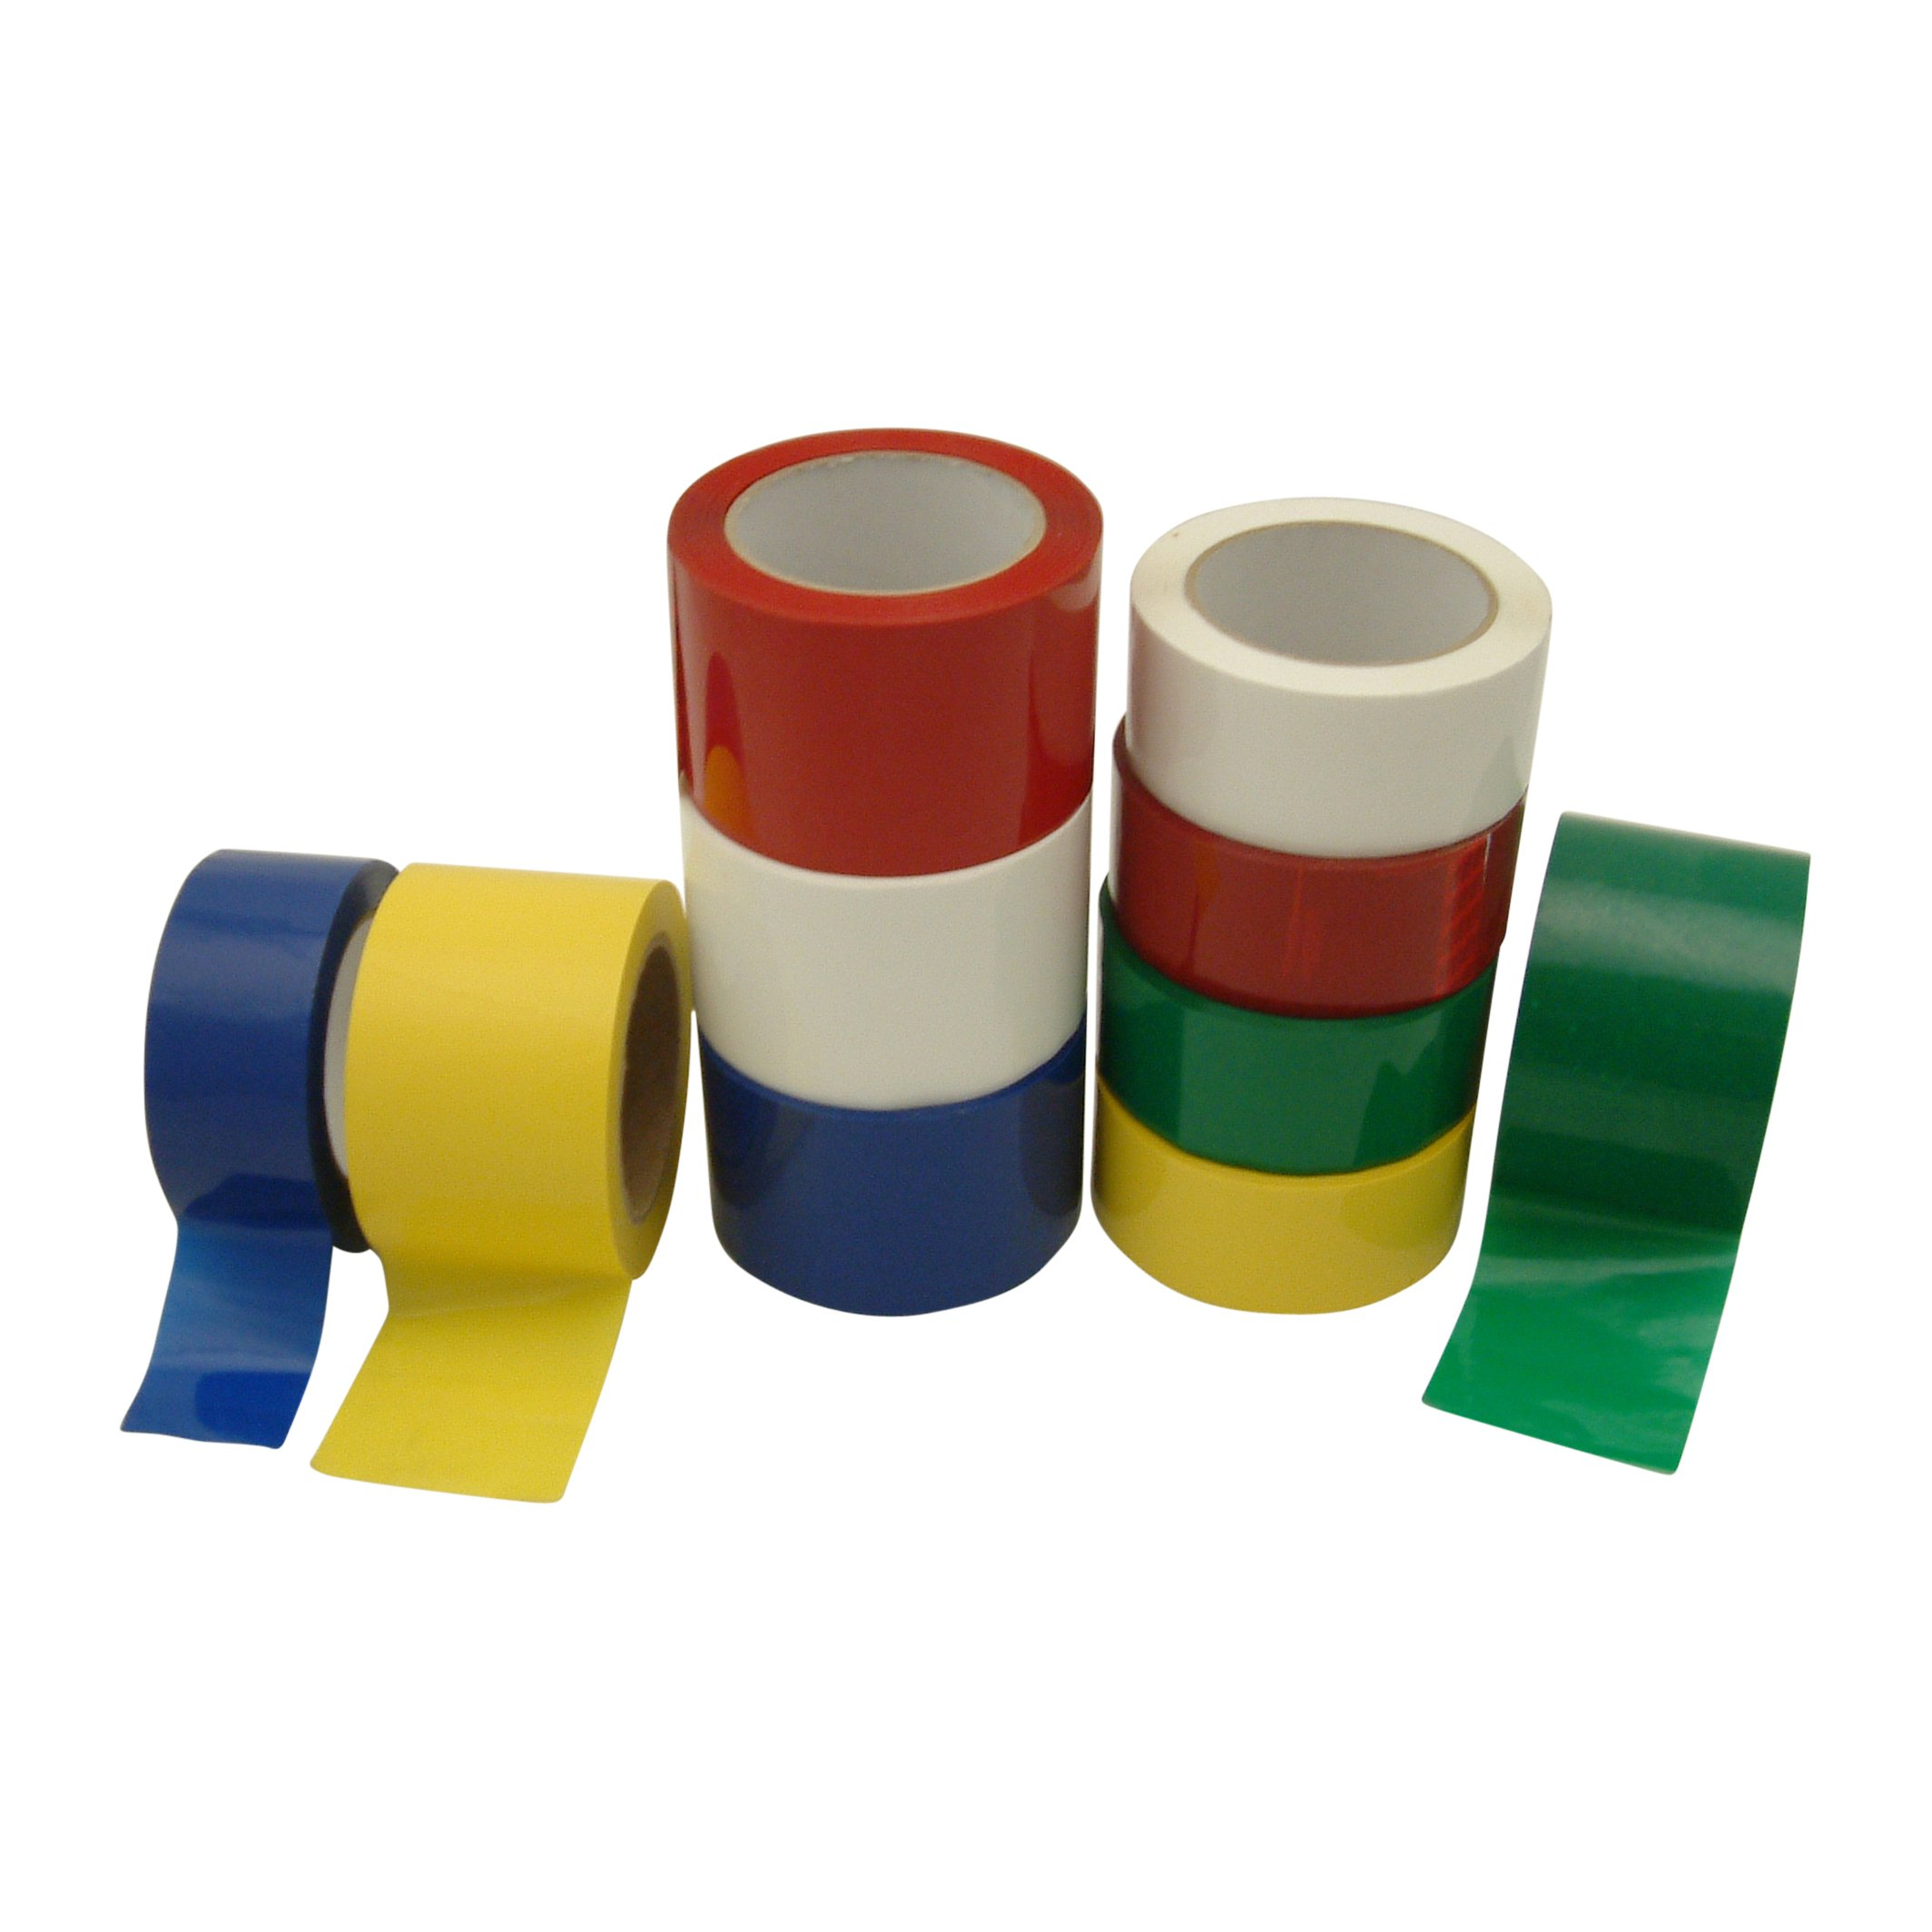 JVCC OPP-26C Premium Grade Colored Packaging Tape: 2 in. x 72 yds. (Red) by J.V. Converting